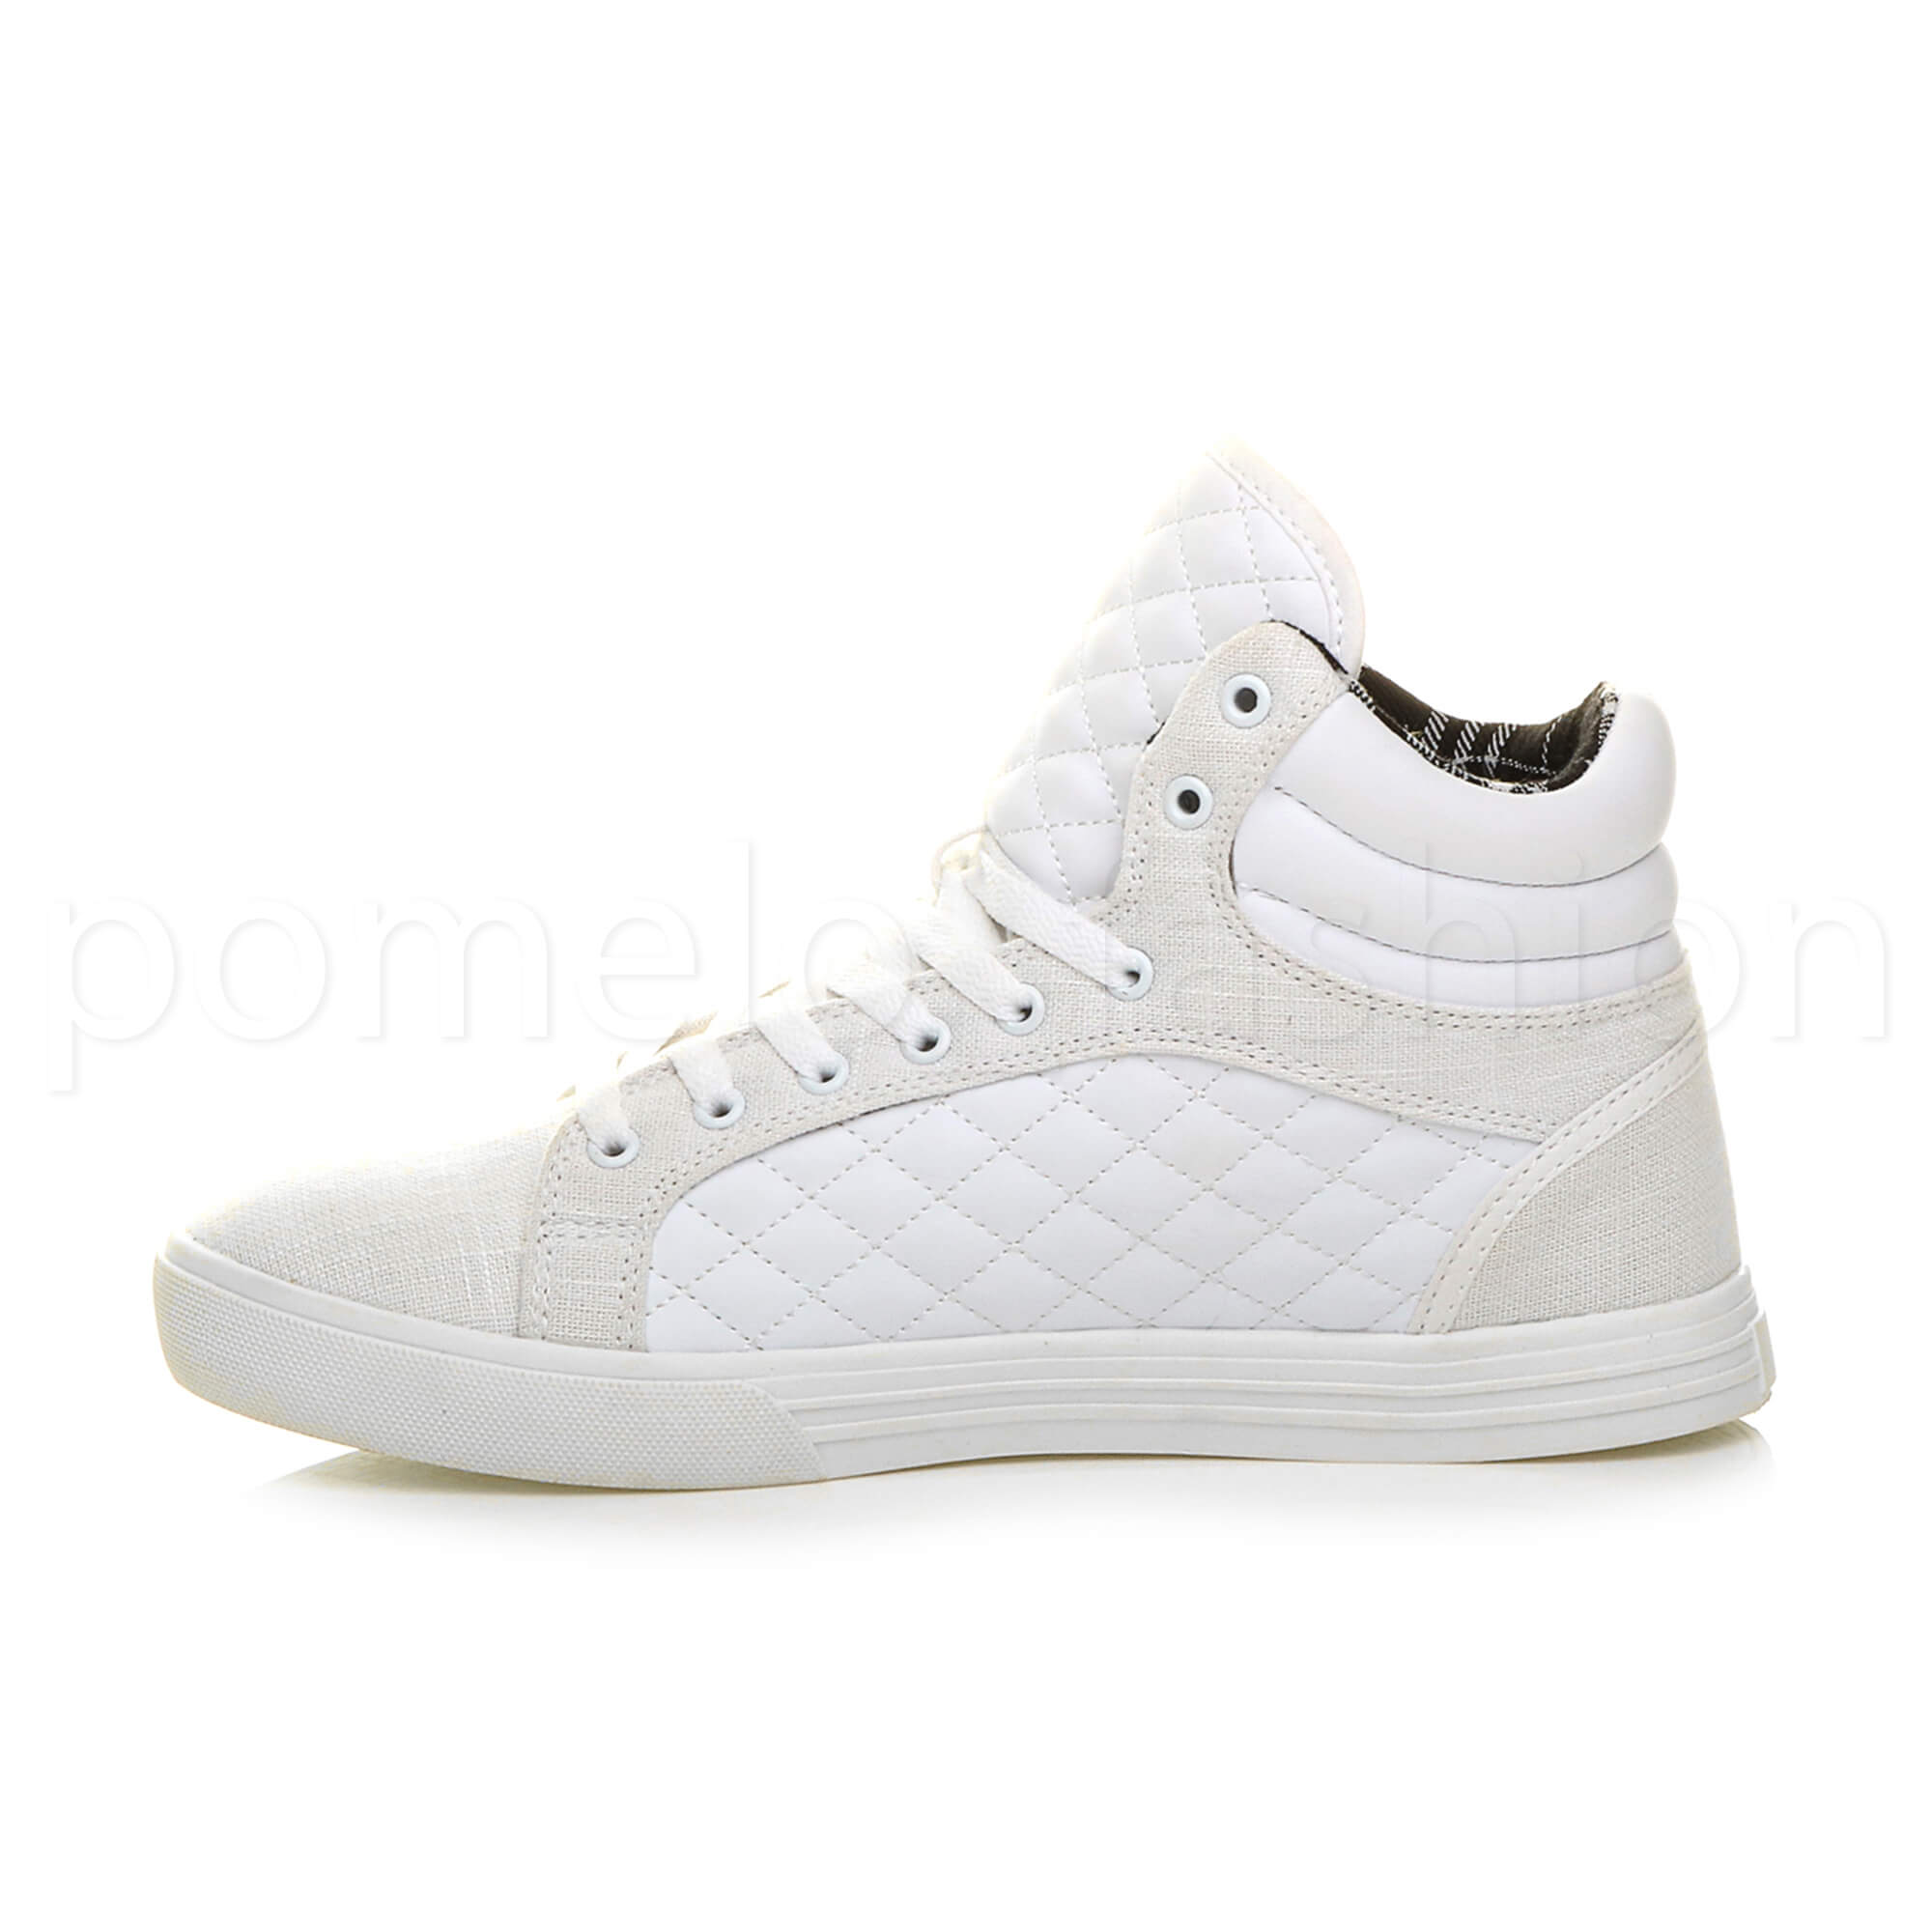 MENS QUILTED FLAT LACE UP HI HIGH TOP ANKLE TRAINER BOOTS SNEAKERS SIZE